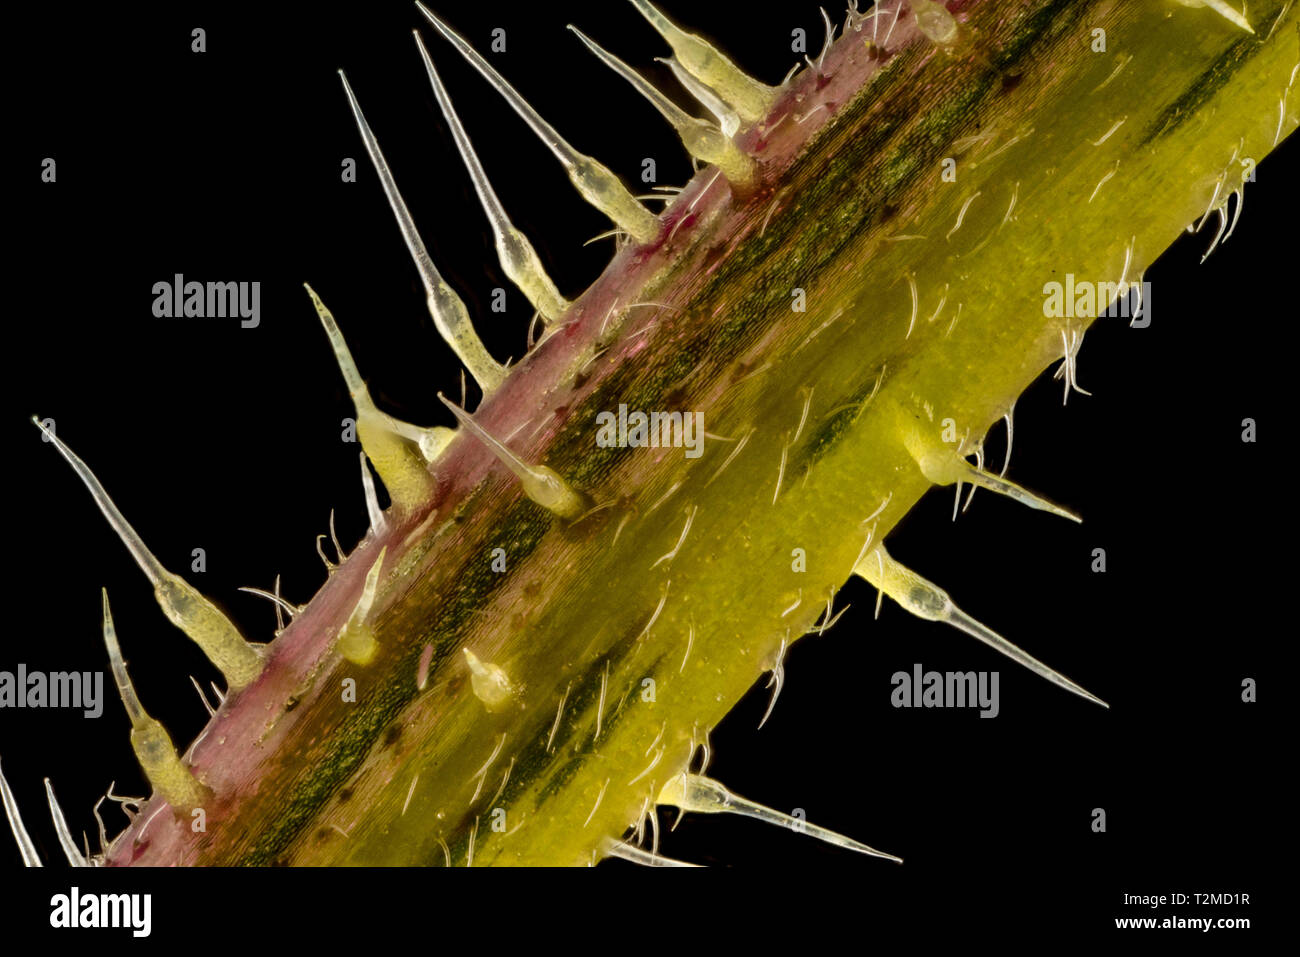 Stacked focus, extreme close up of of stinging nettle stem(Urtica dioica) showing the sting cells or trichome hairs. five times magnification - Stock Image